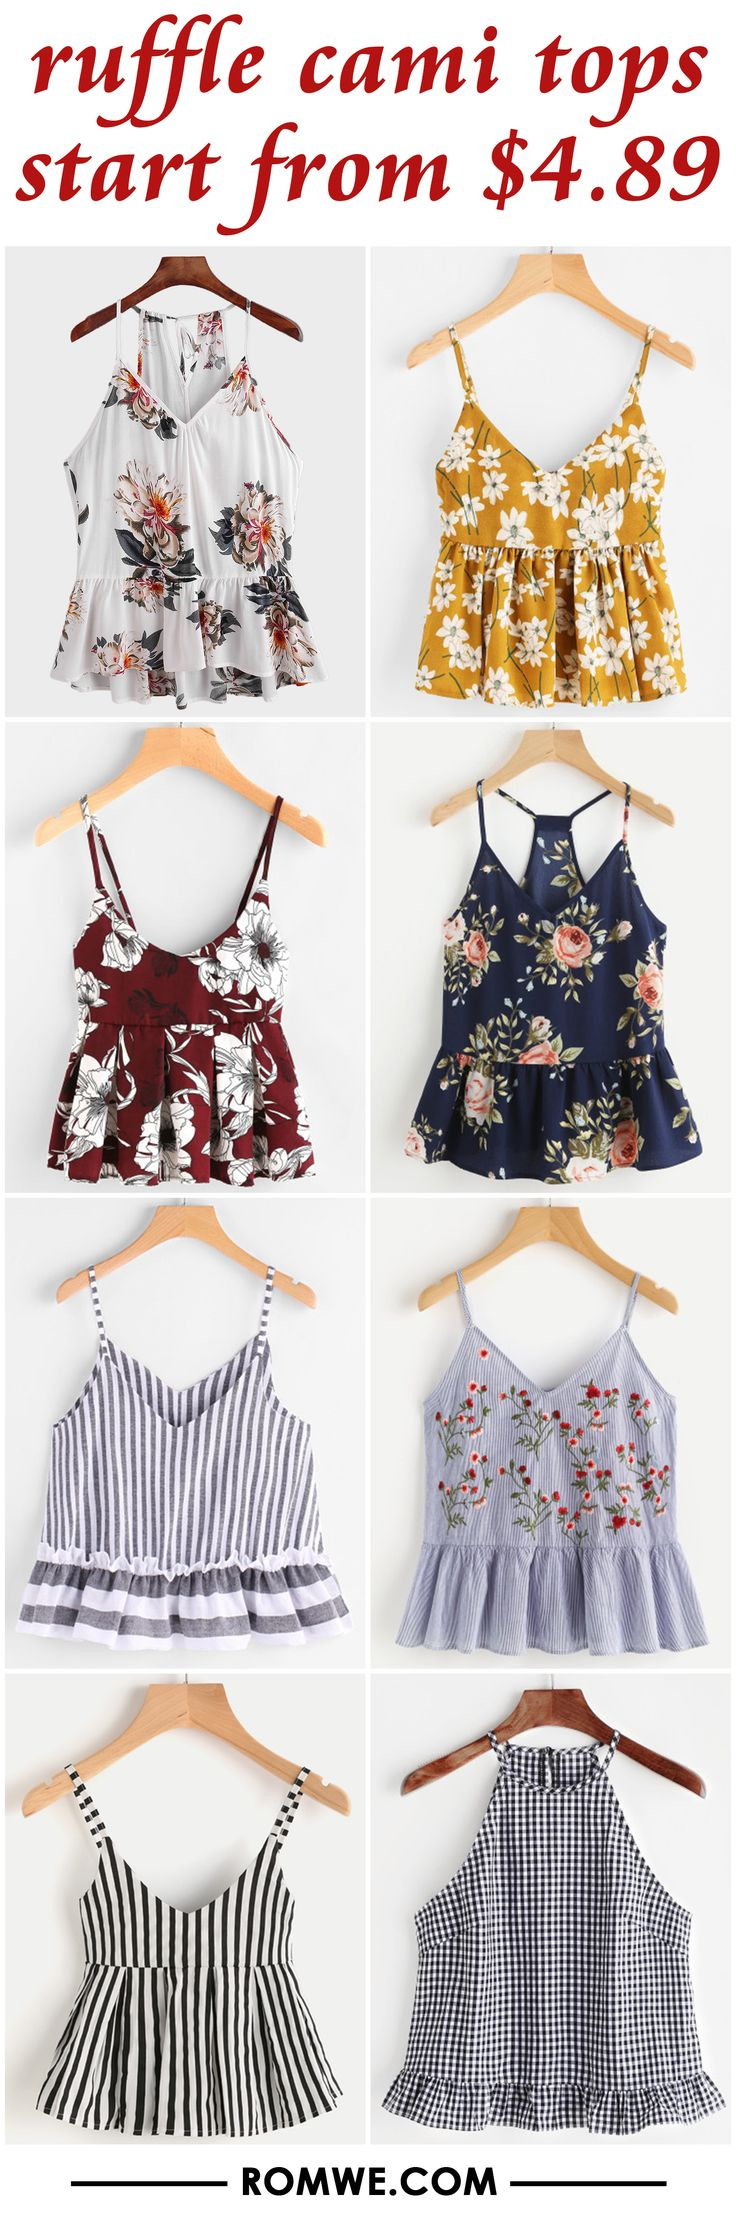 ruffle cami tops from $4.89